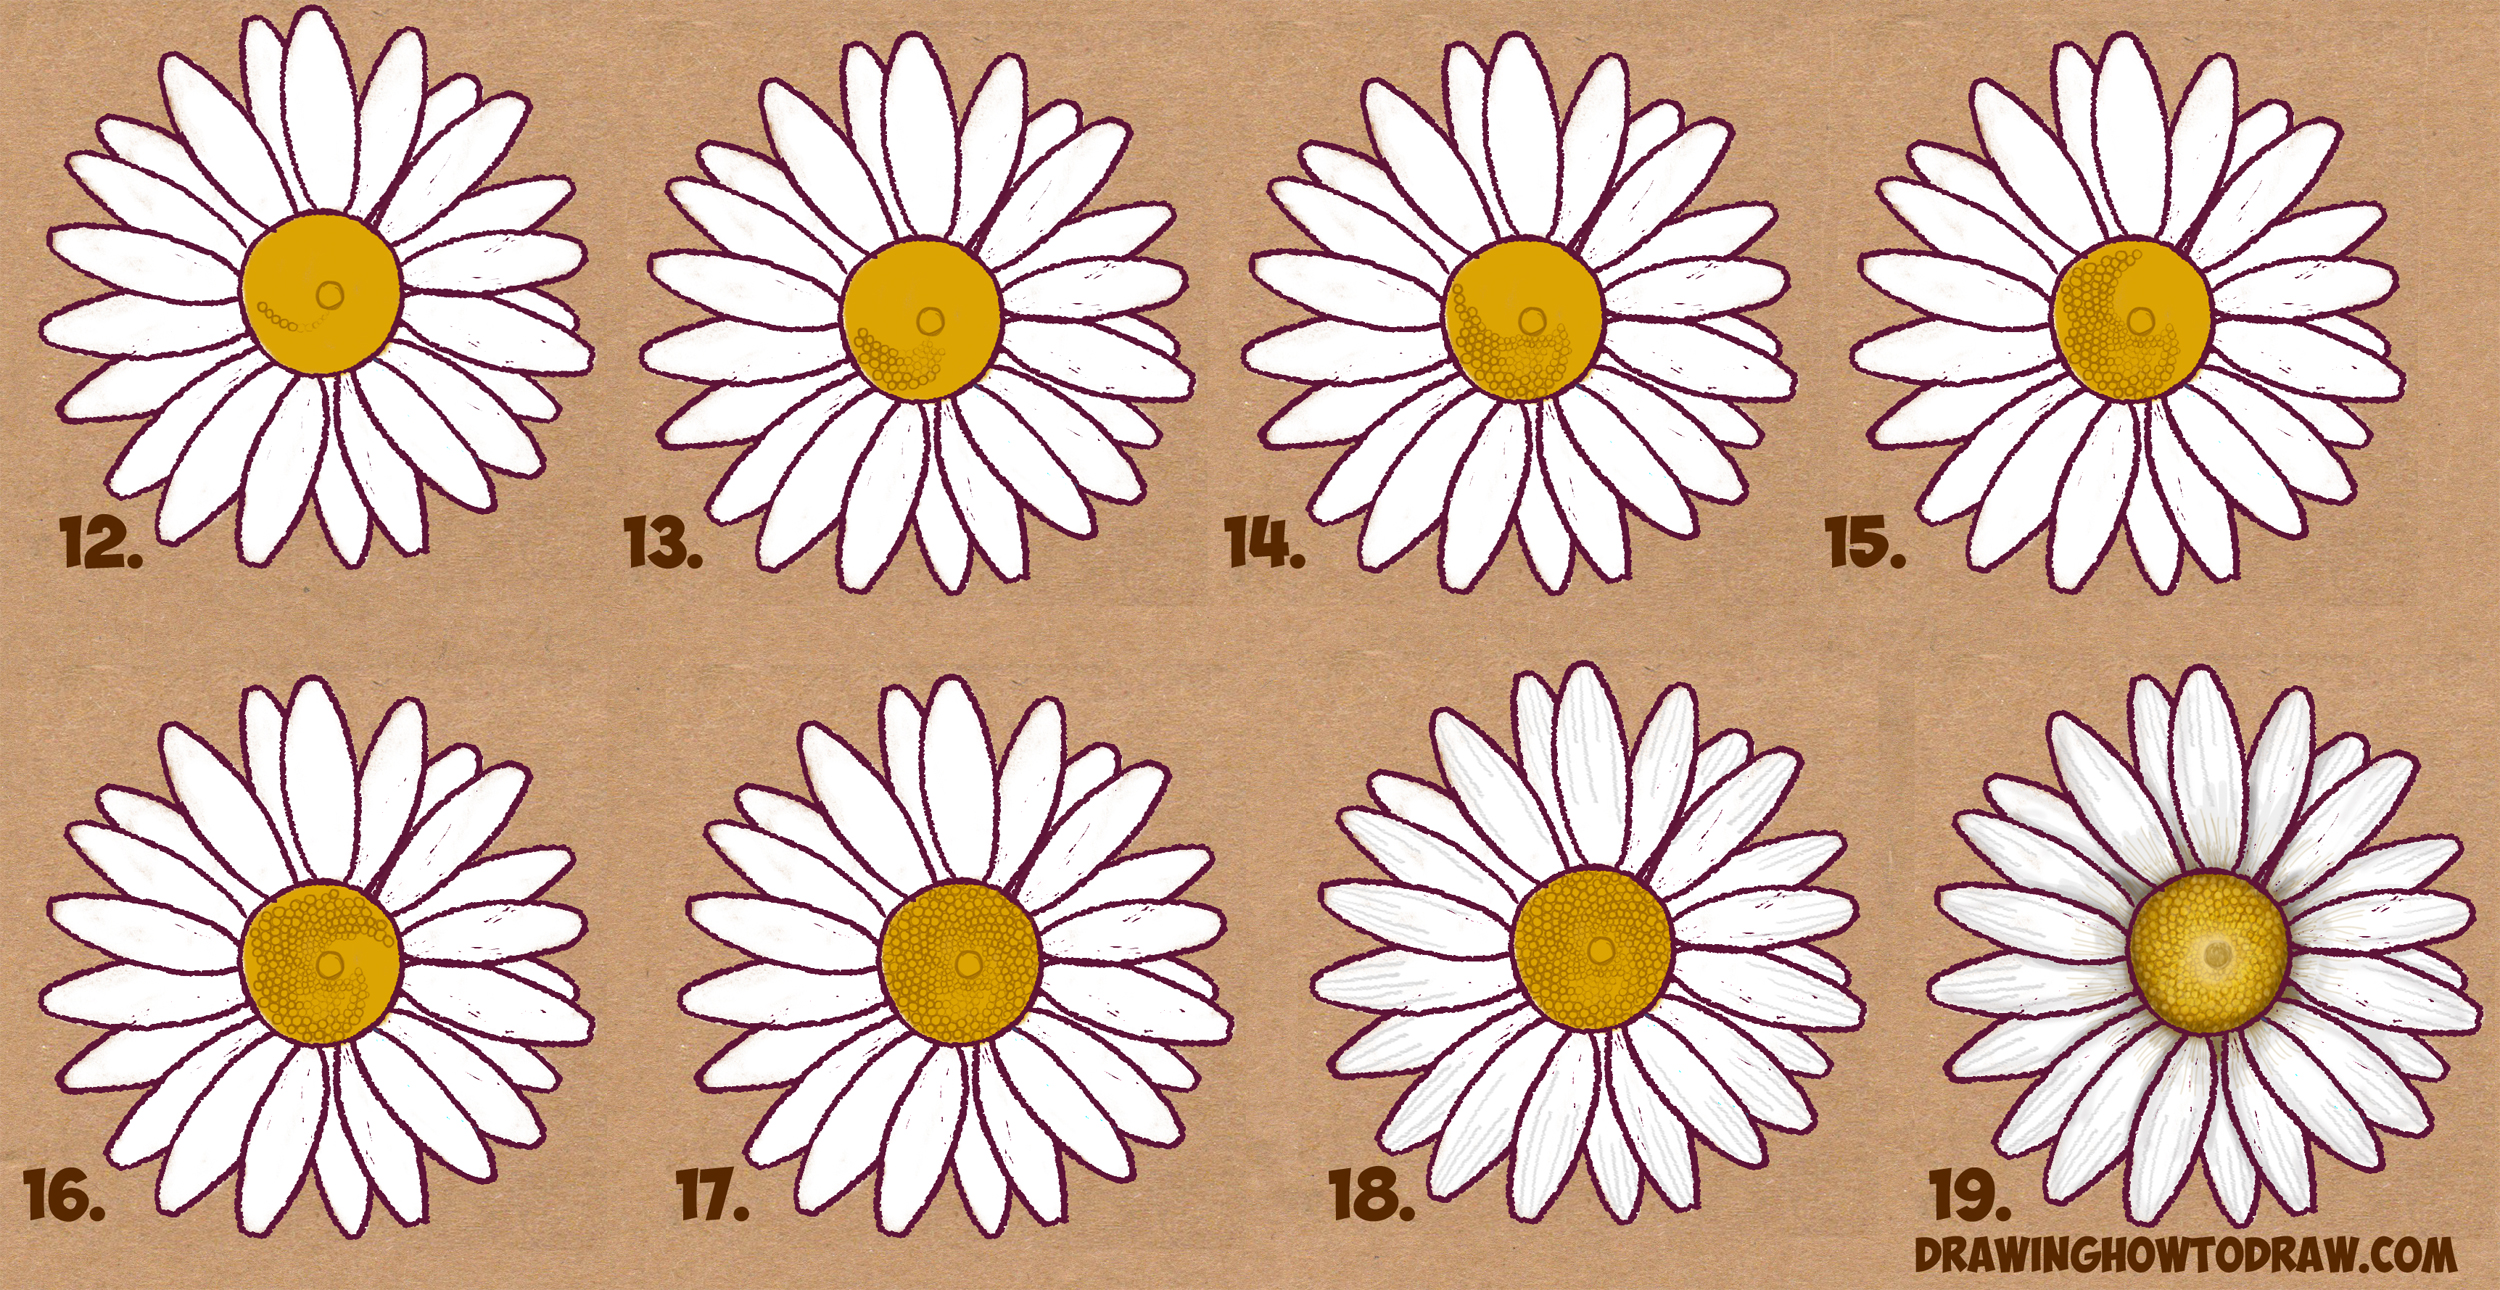 Daisies flowers drawing at getdrawings free for personal use 2500x1290 how to draw a daisy flower daisies in easy step by step drawing izmirmasajfo